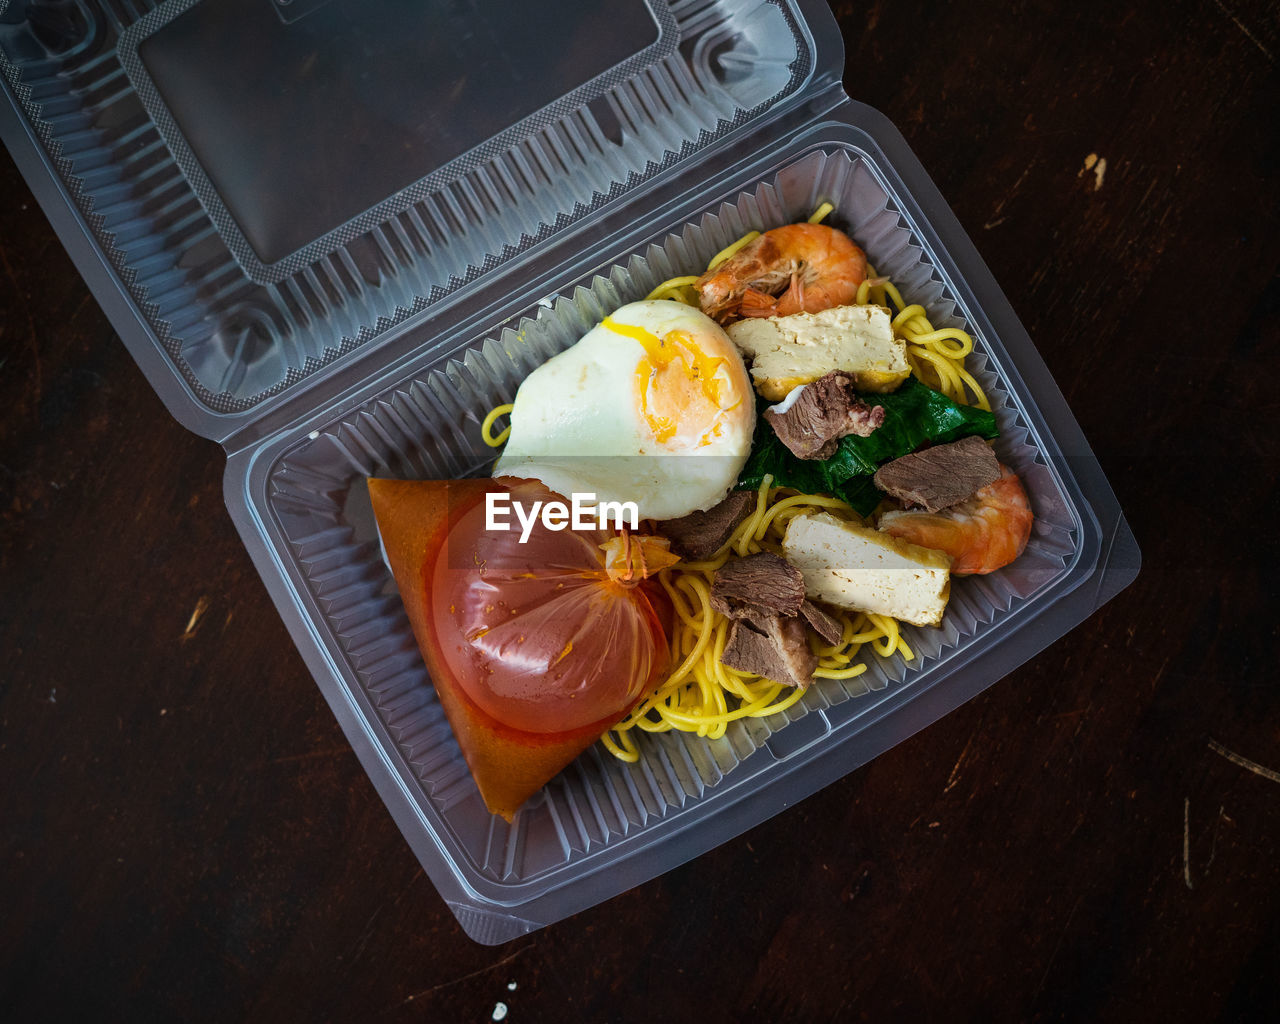 Mee bandung muar in a take out box, a malaysia delicacy noodle originated from muar, malaysia.